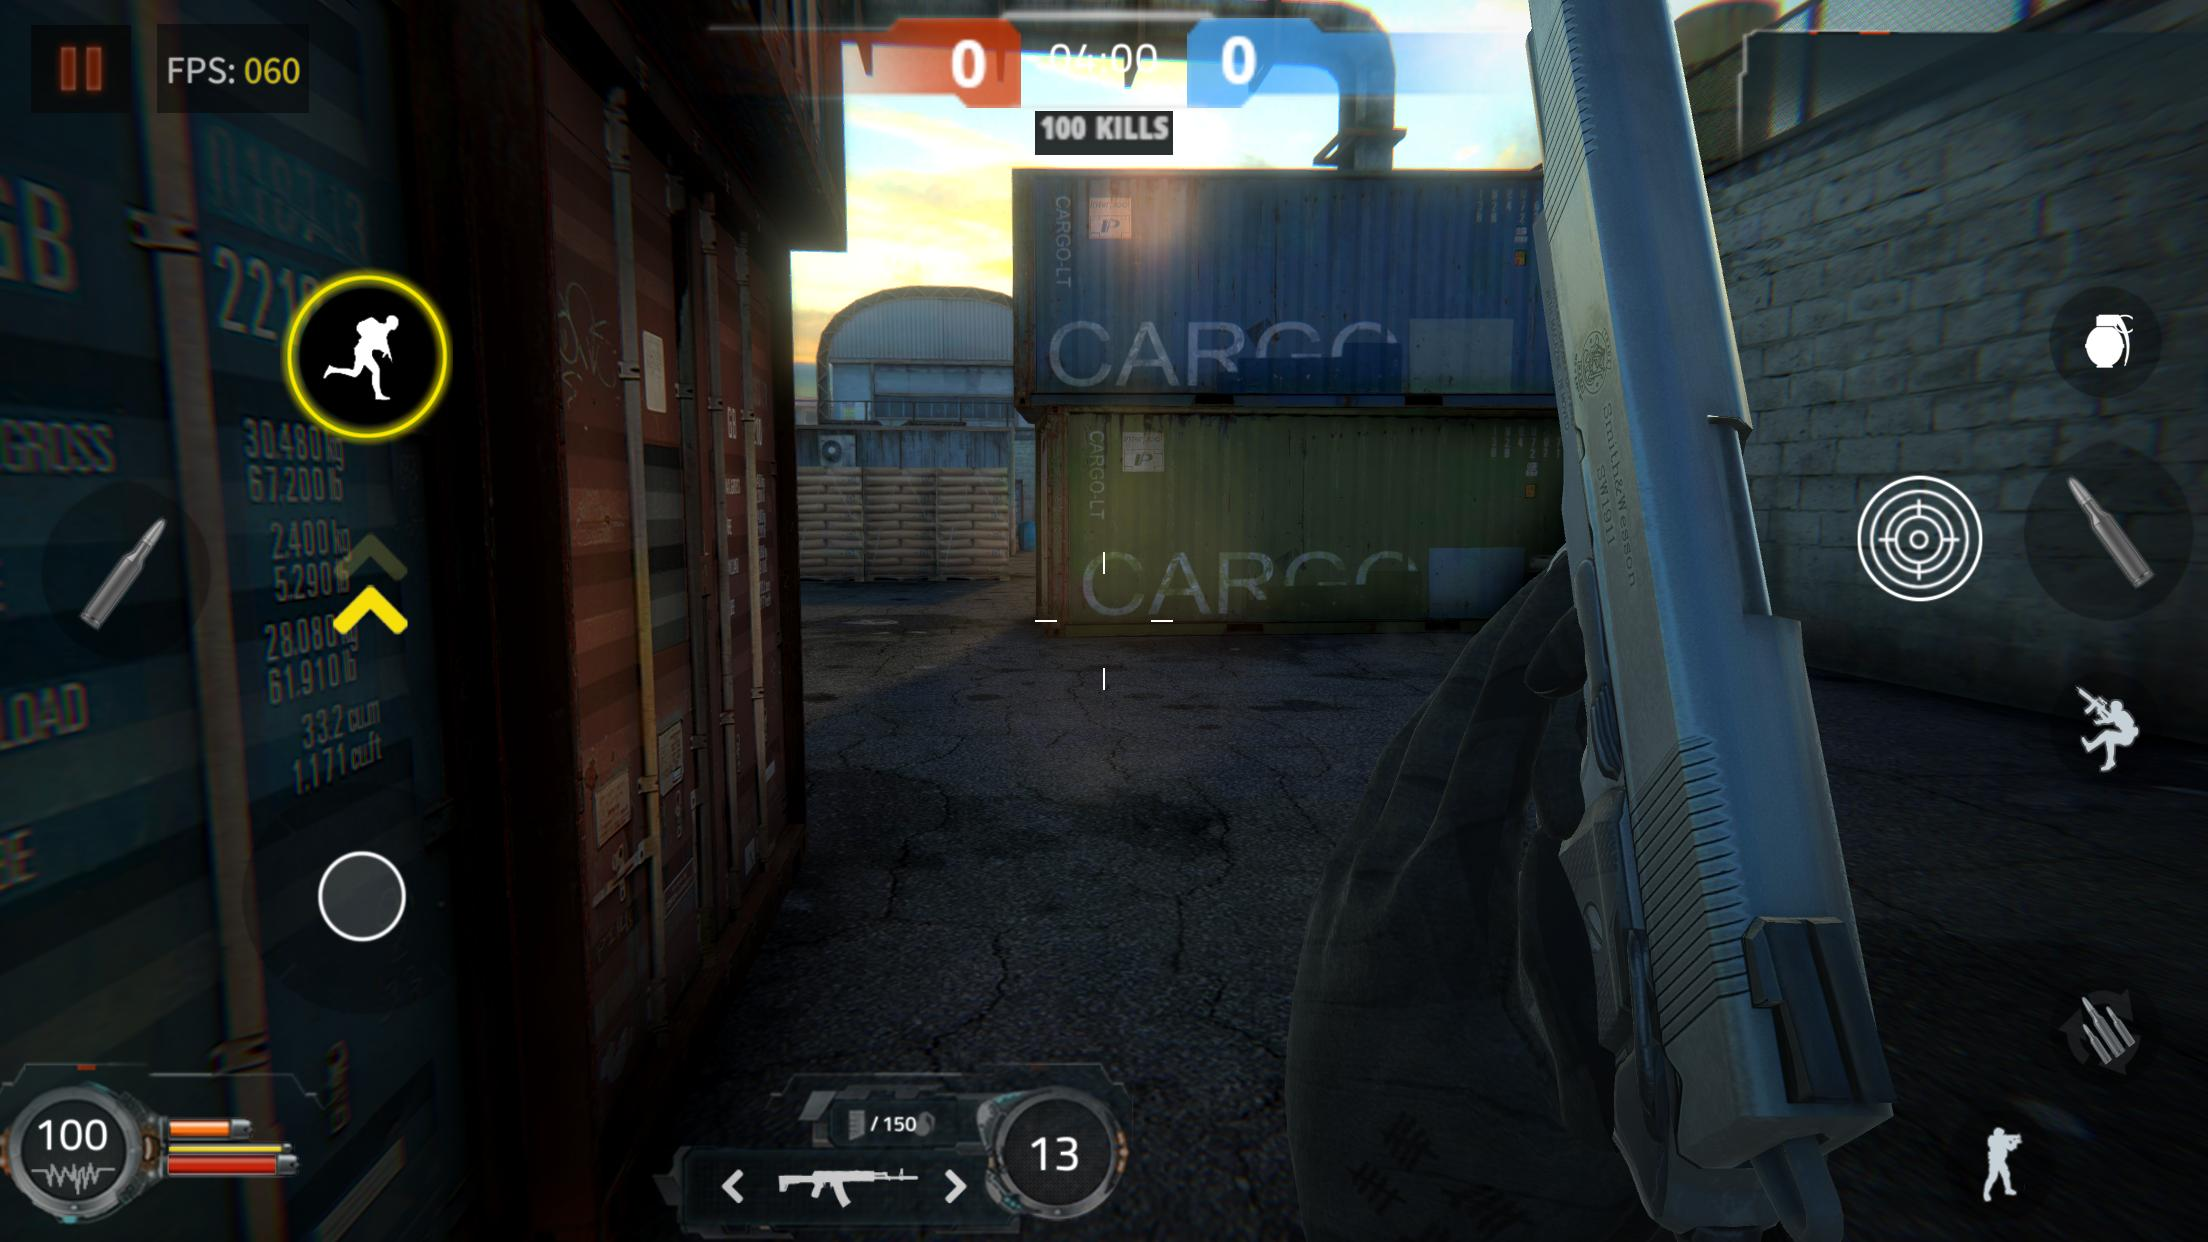 Alone Wars Multiplayer Fps Battle Royale For Android Apk Download